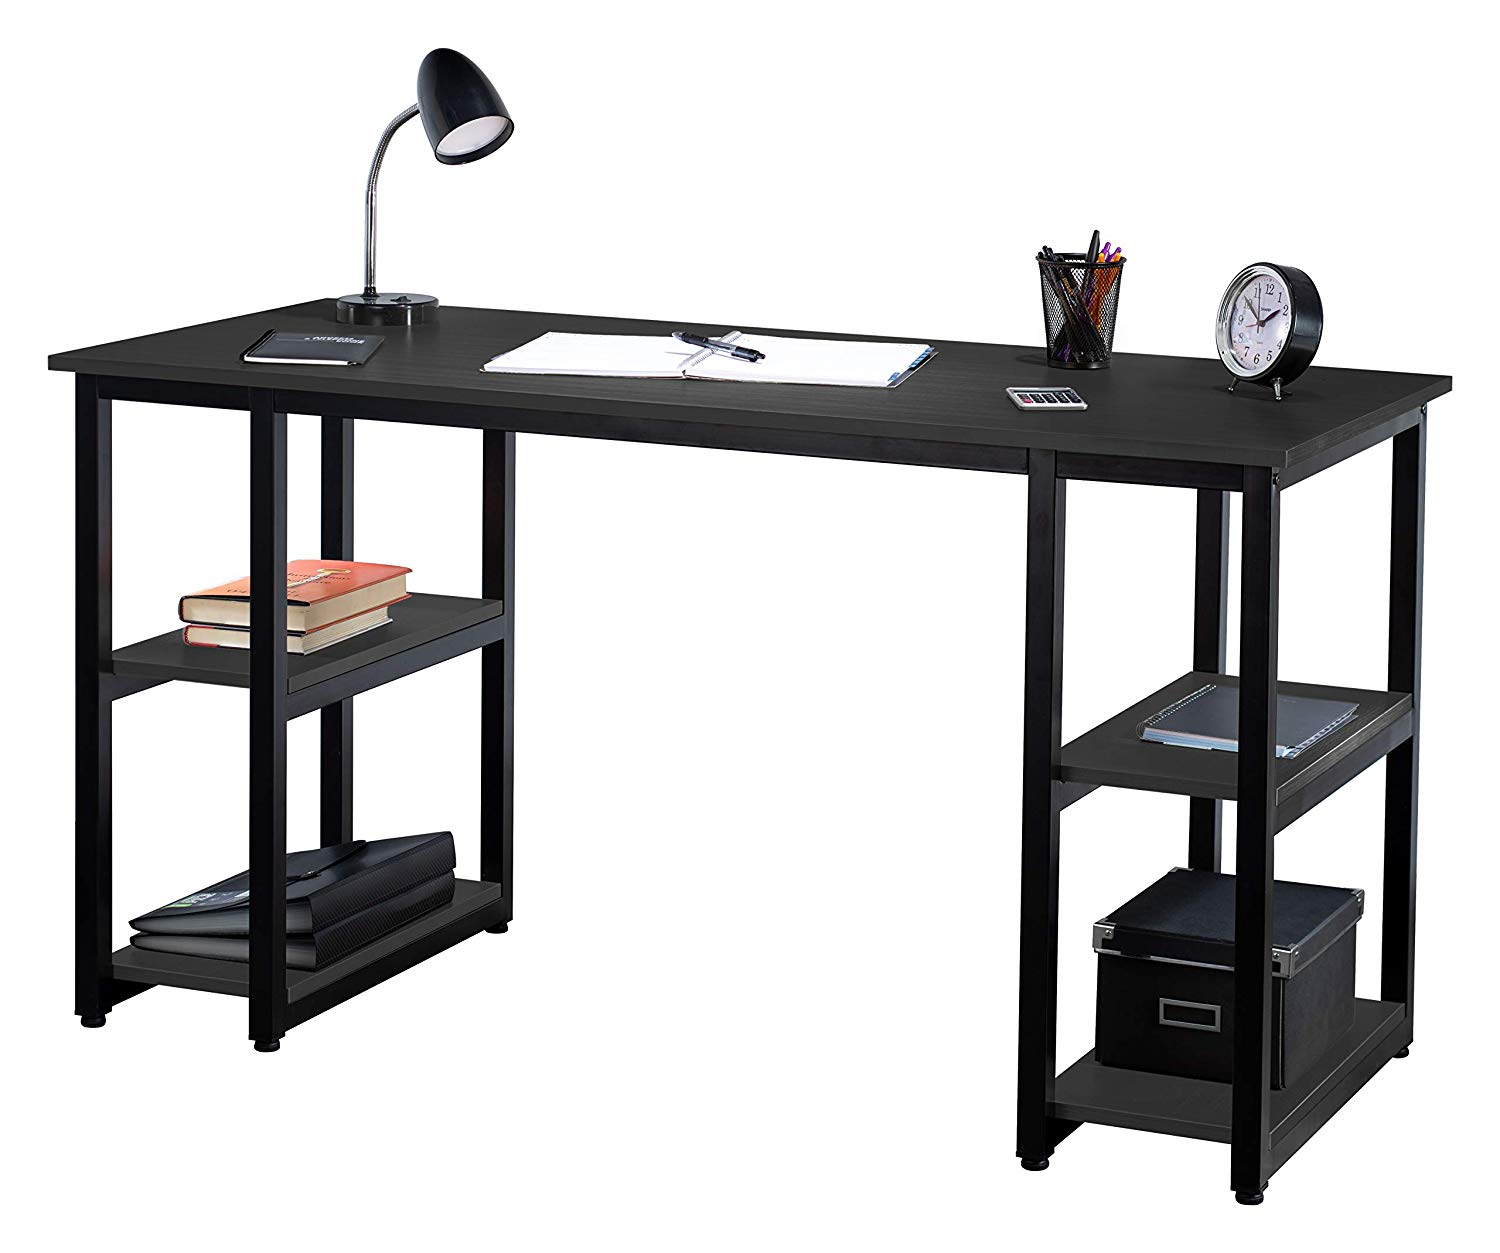 Fineboard Home Office Computer Desk Work Table with 4 Shelves, (Black)